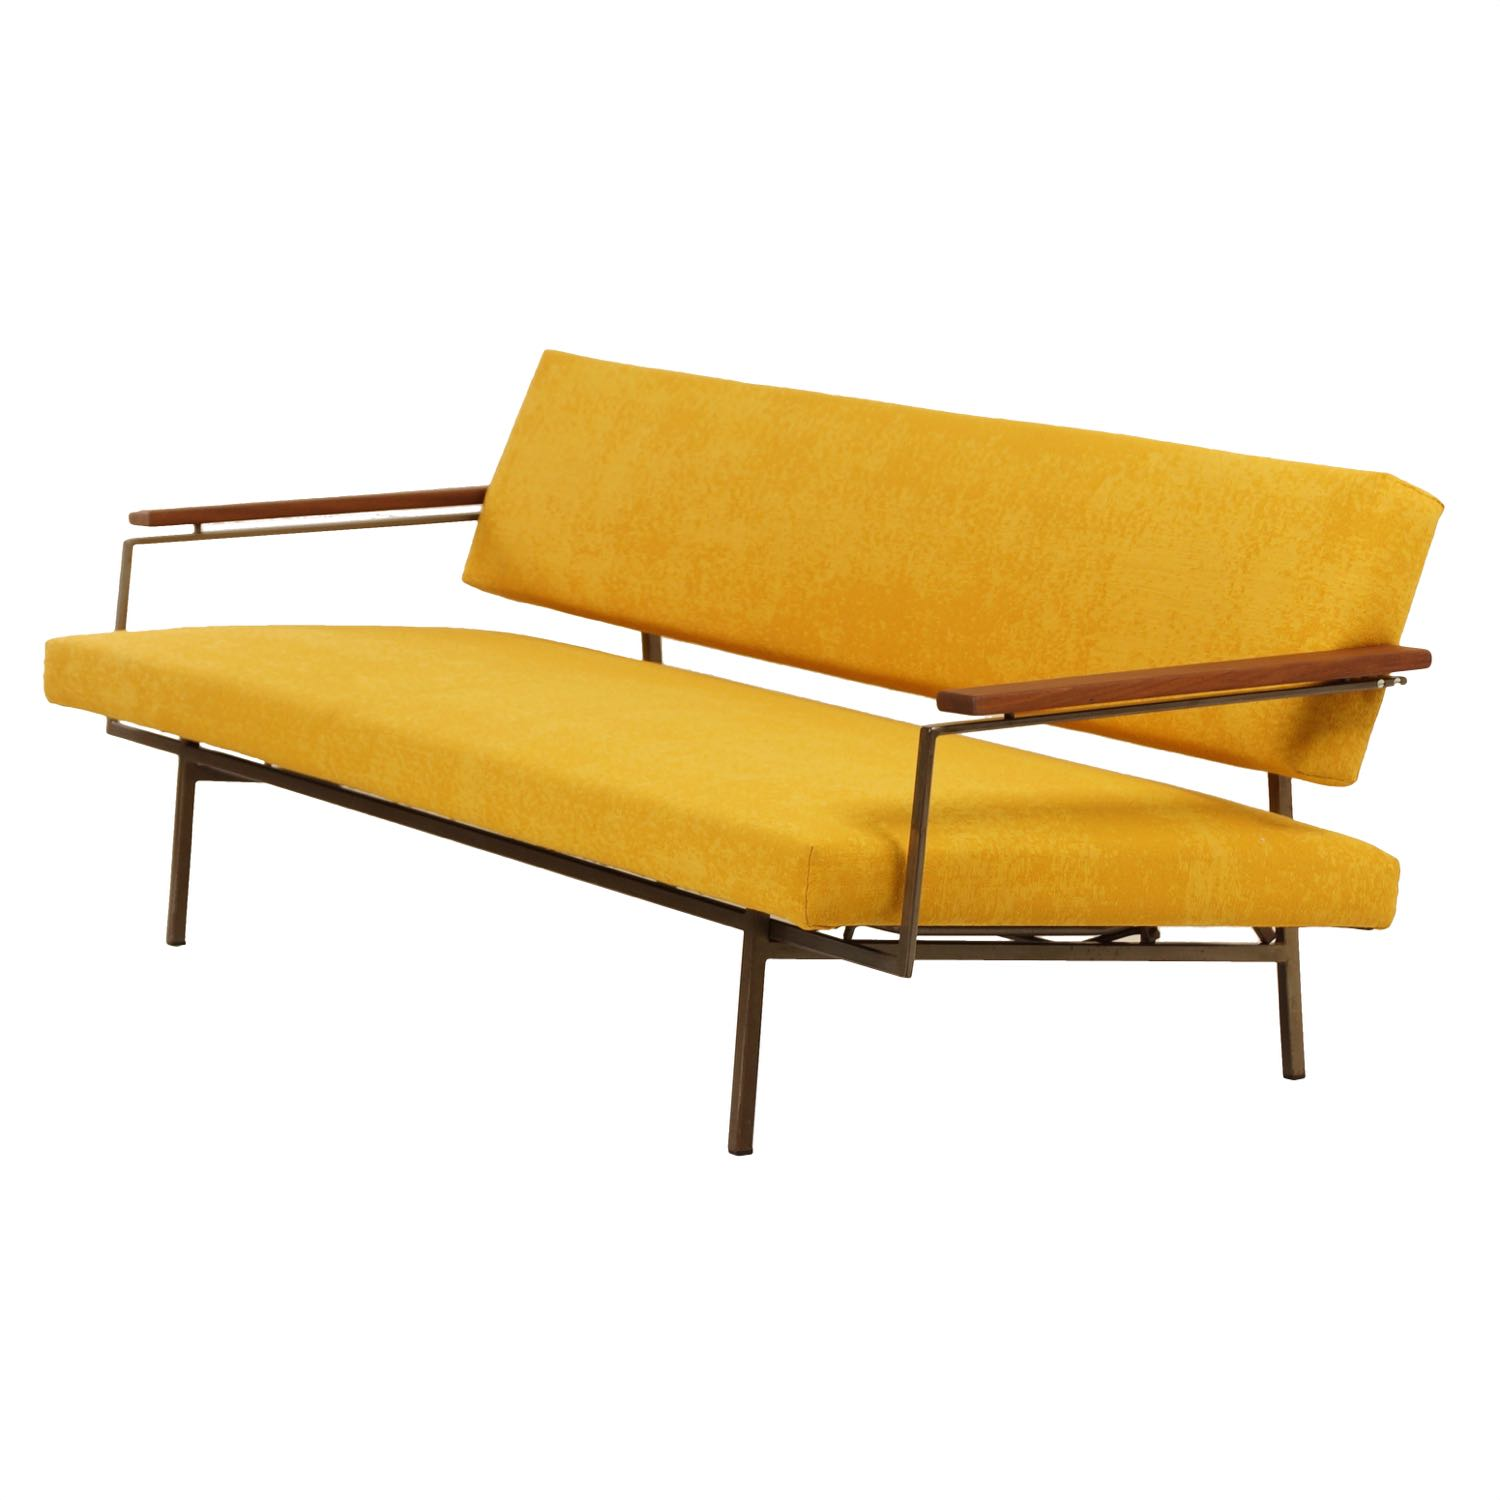 Awesome Lotus Sleeping Sofa By Rob Parry For Gelderland In Ca 1960 Andrewgaddart Wooden Chair Designs For Living Room Andrewgaddartcom